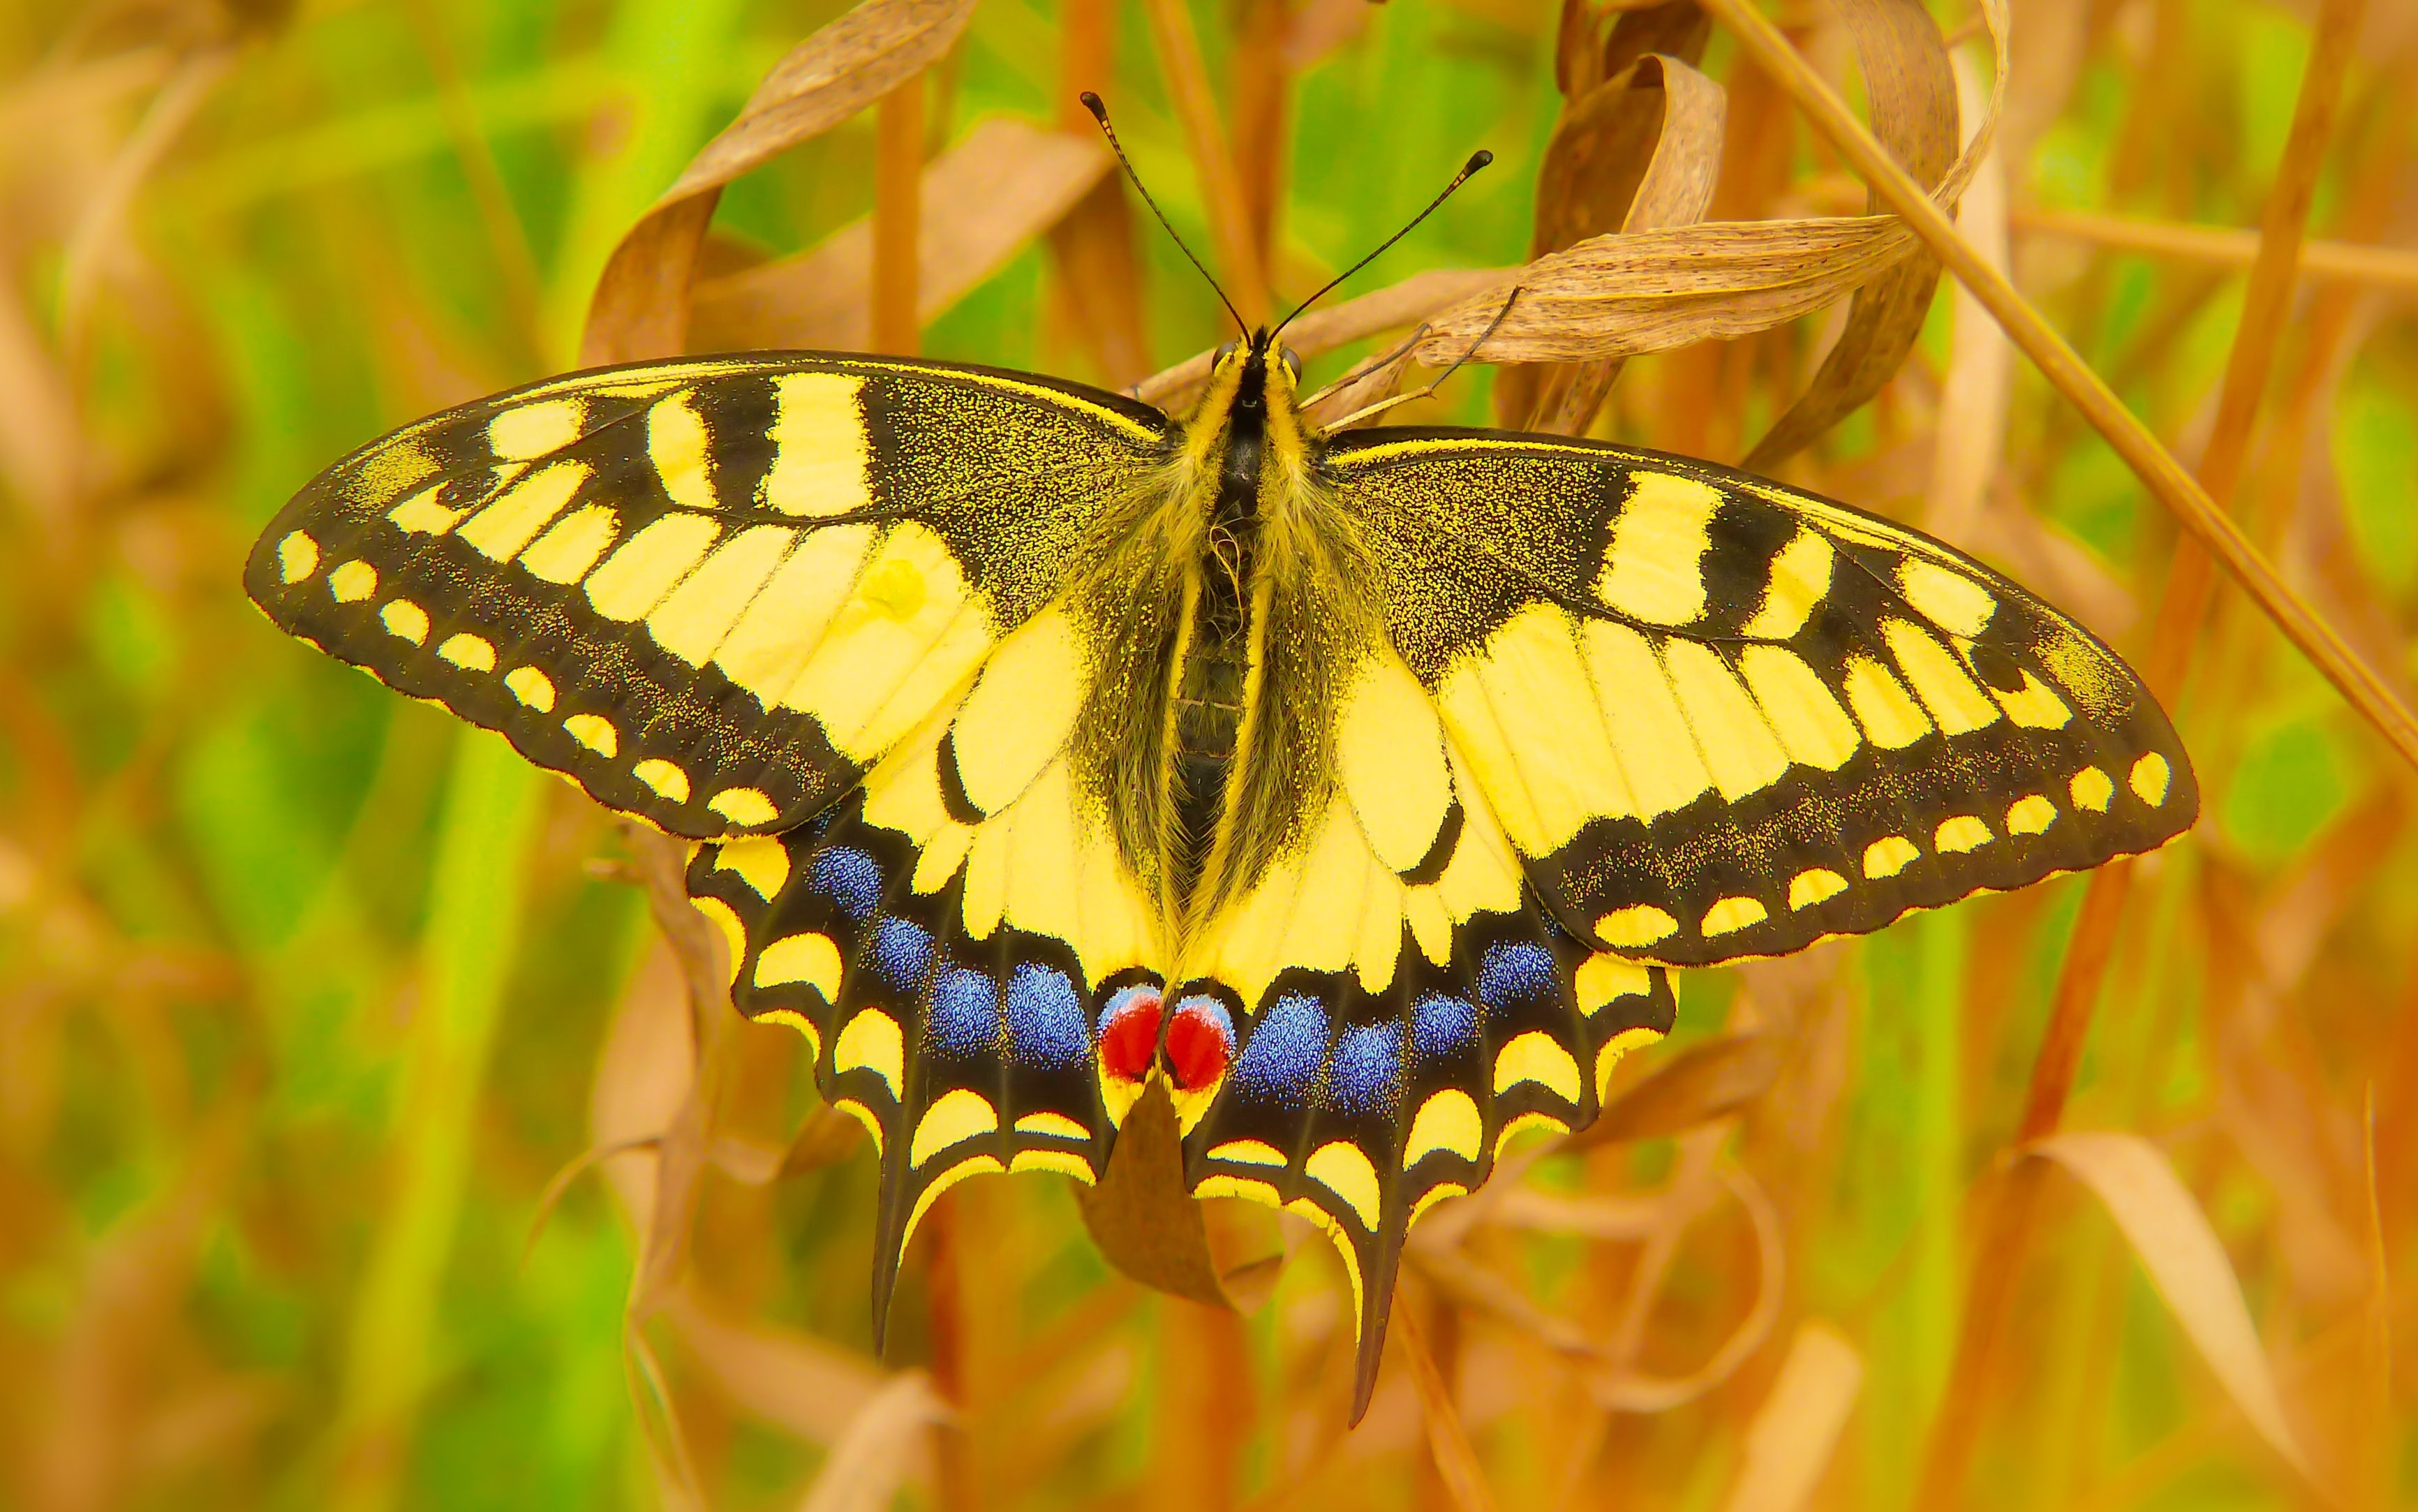 close-up photo of yellow and black moth on brown leaf